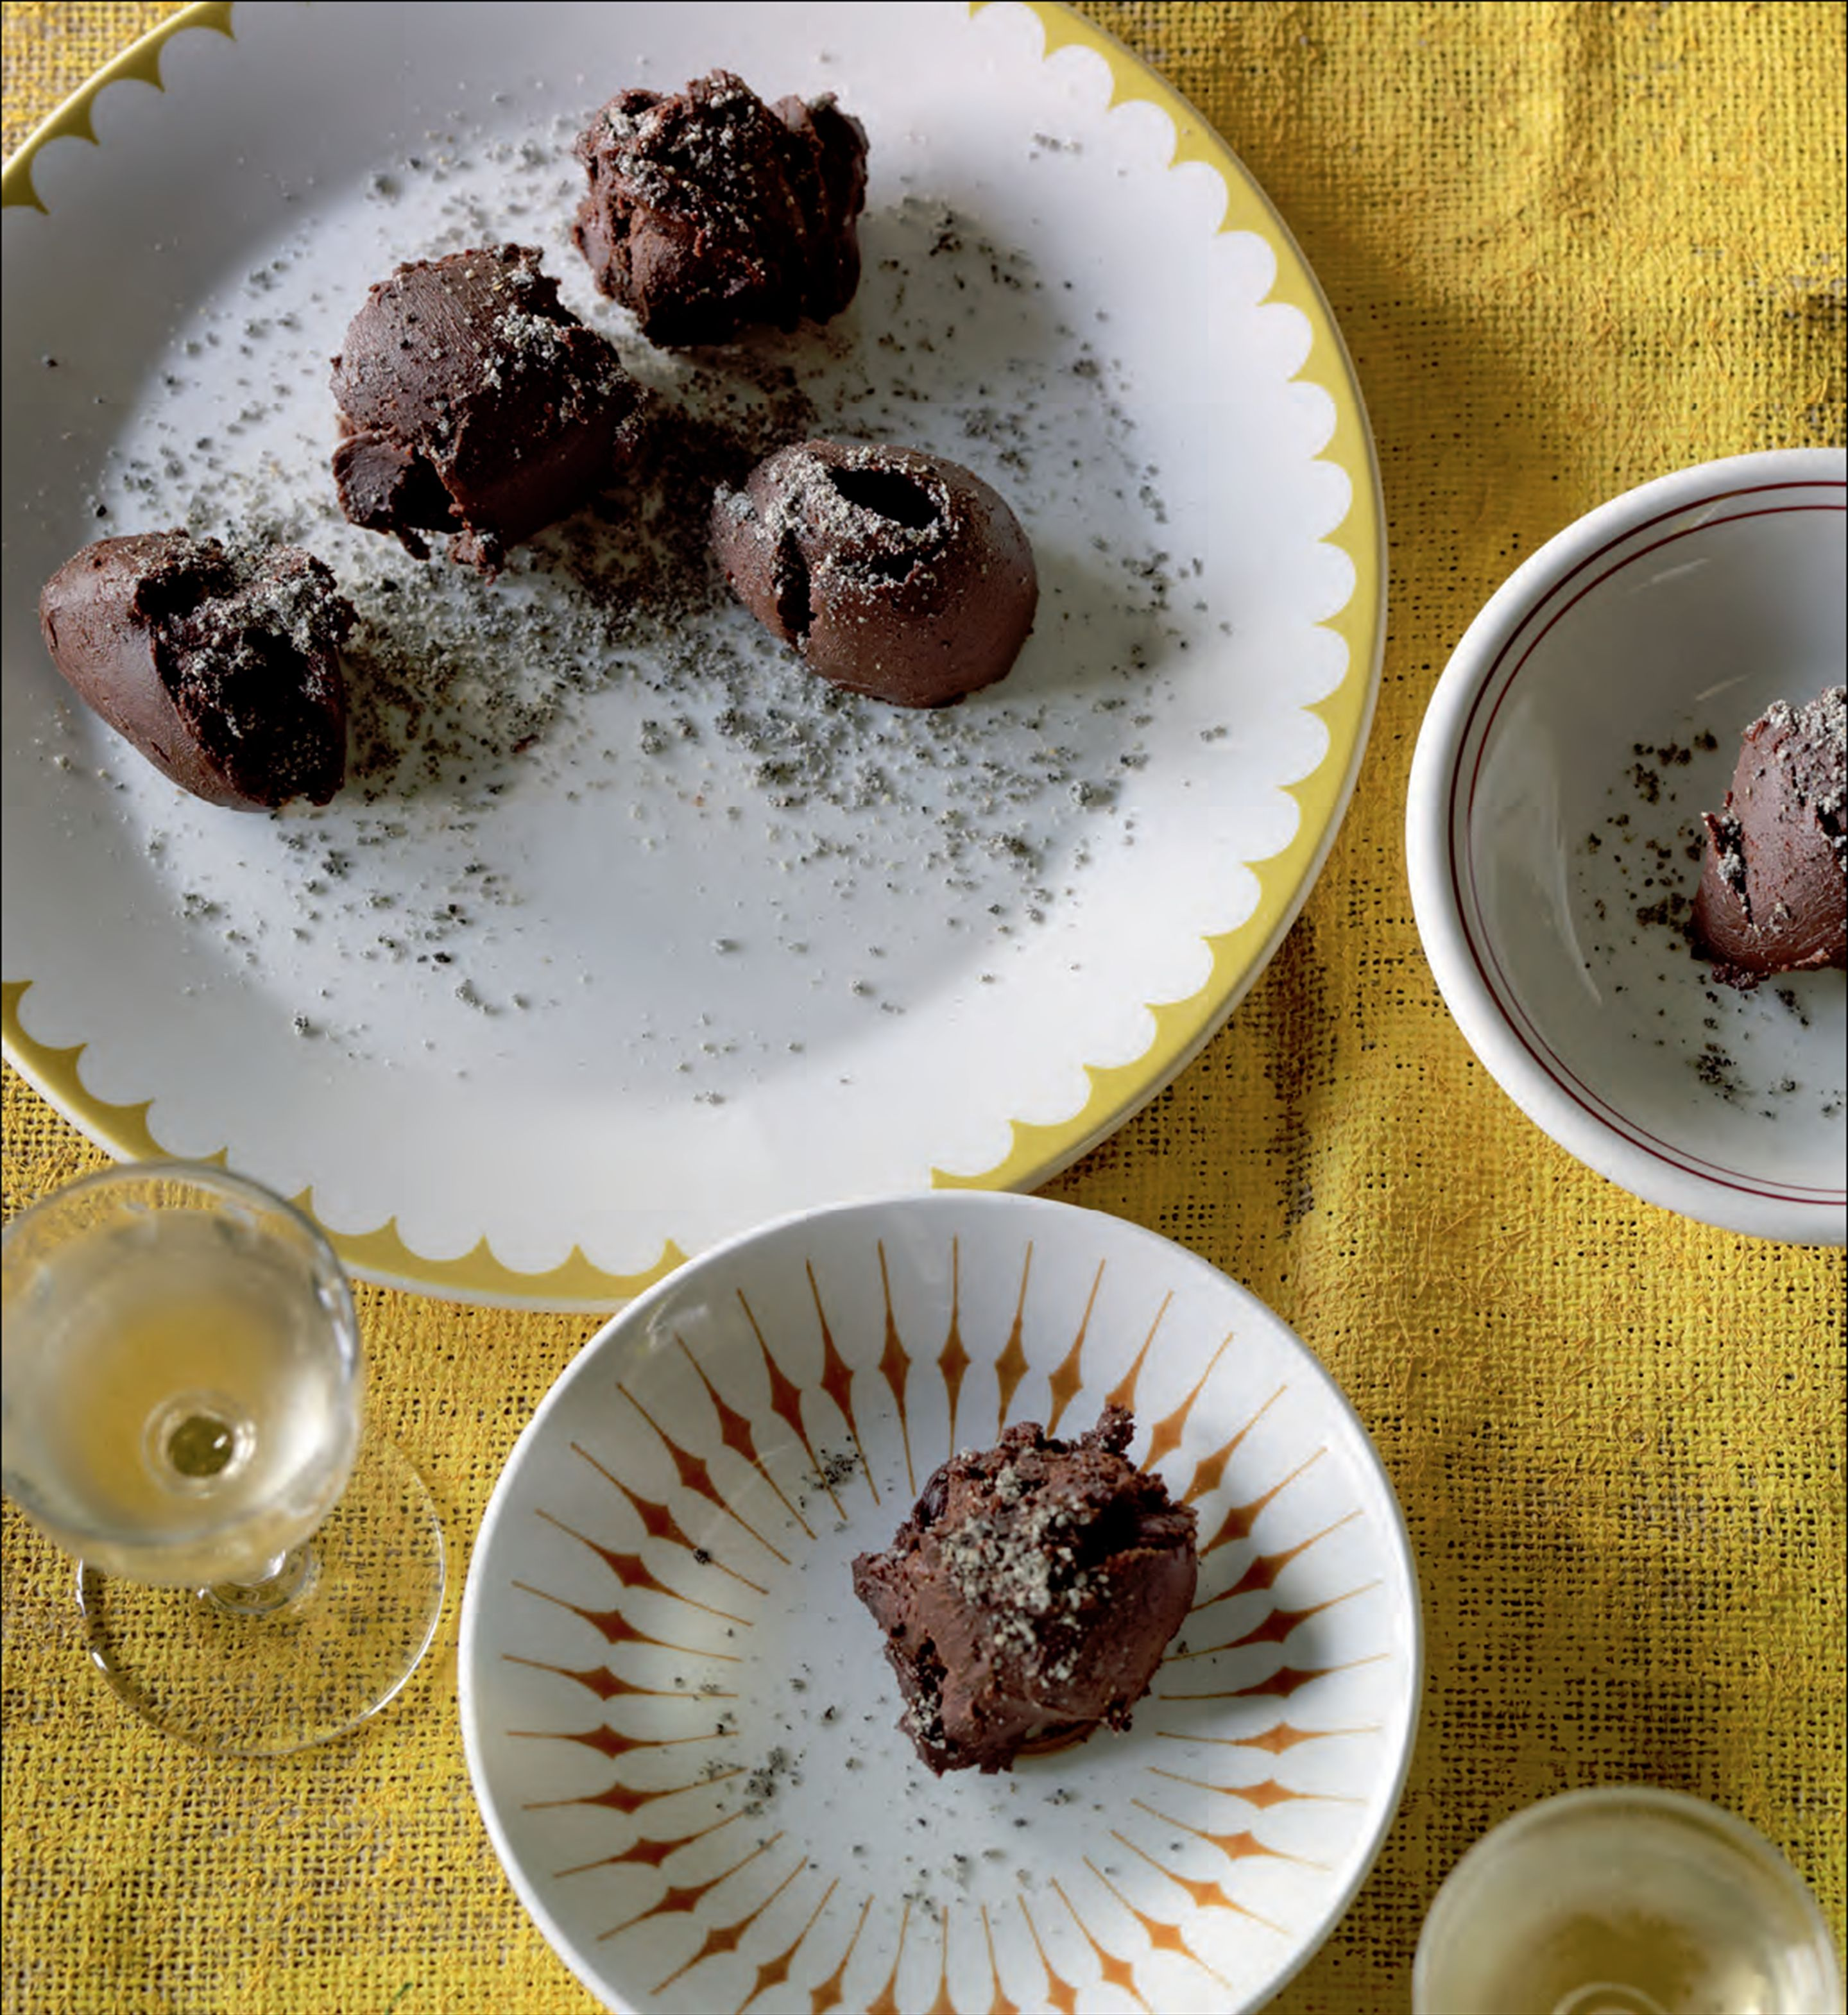 Chocolate truffles with soy bean powder